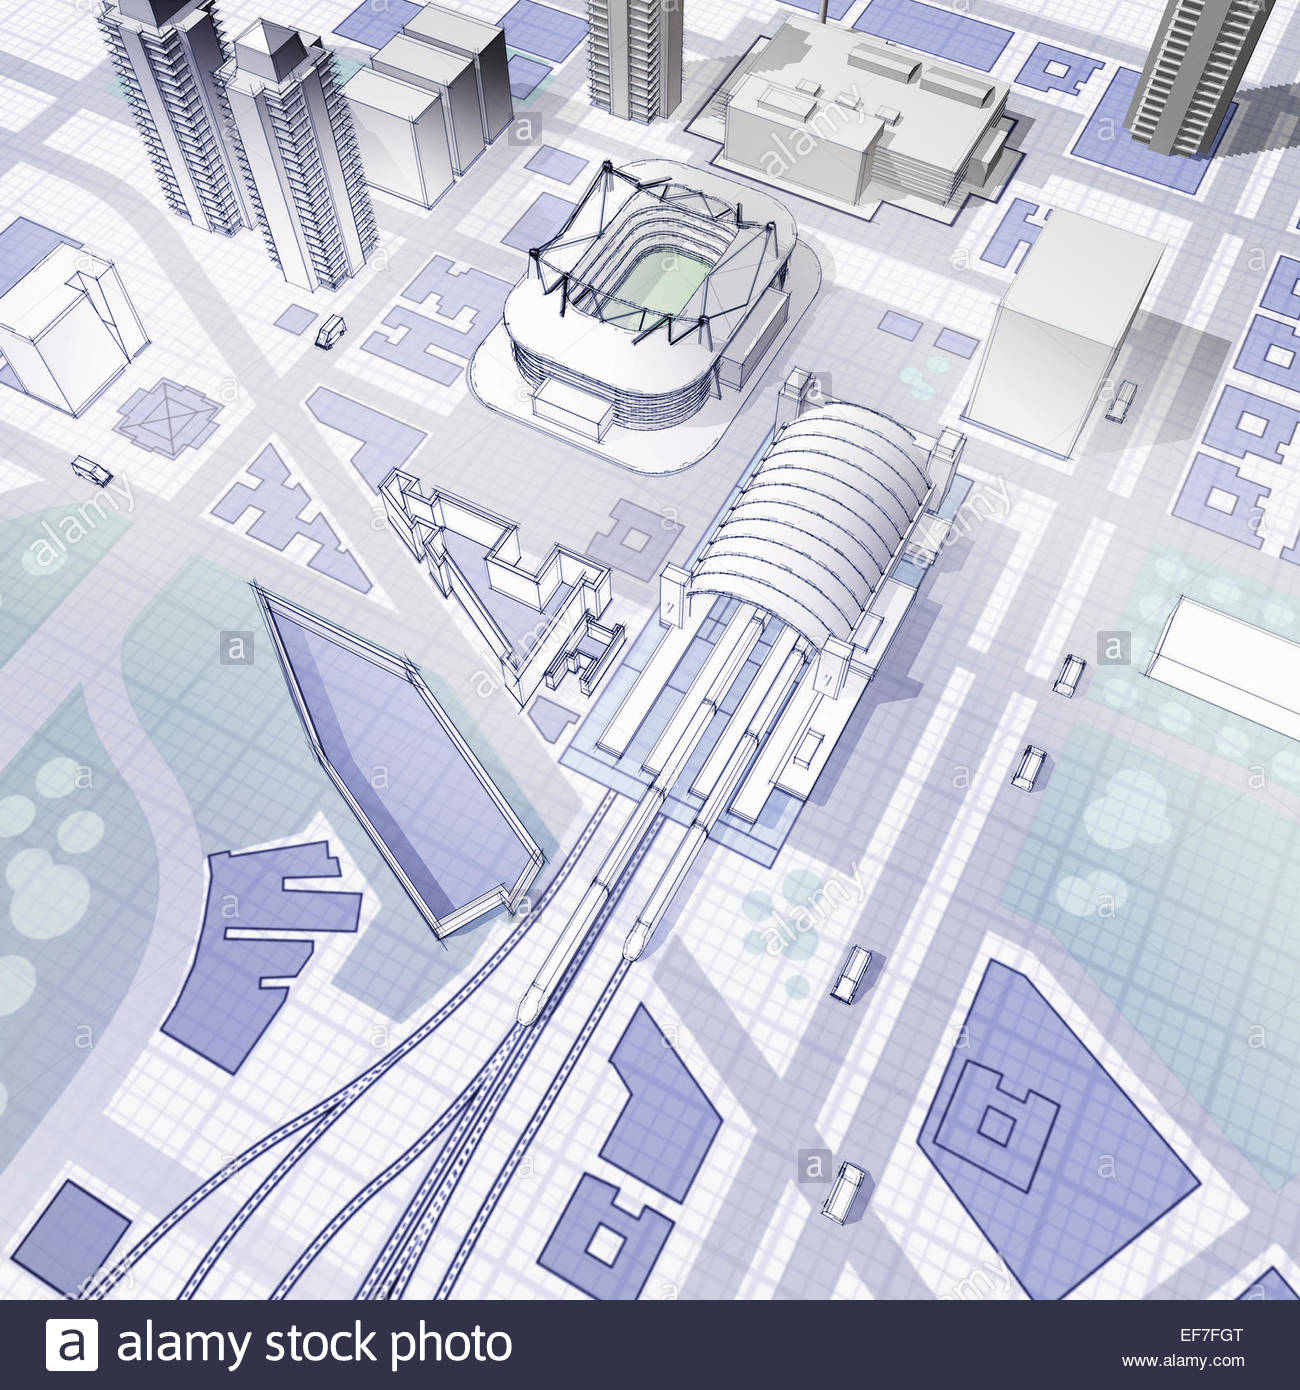 Blueprint of urban planning stock photo 78227208 alamy blueprint of urban planning malvernweather Choice Image